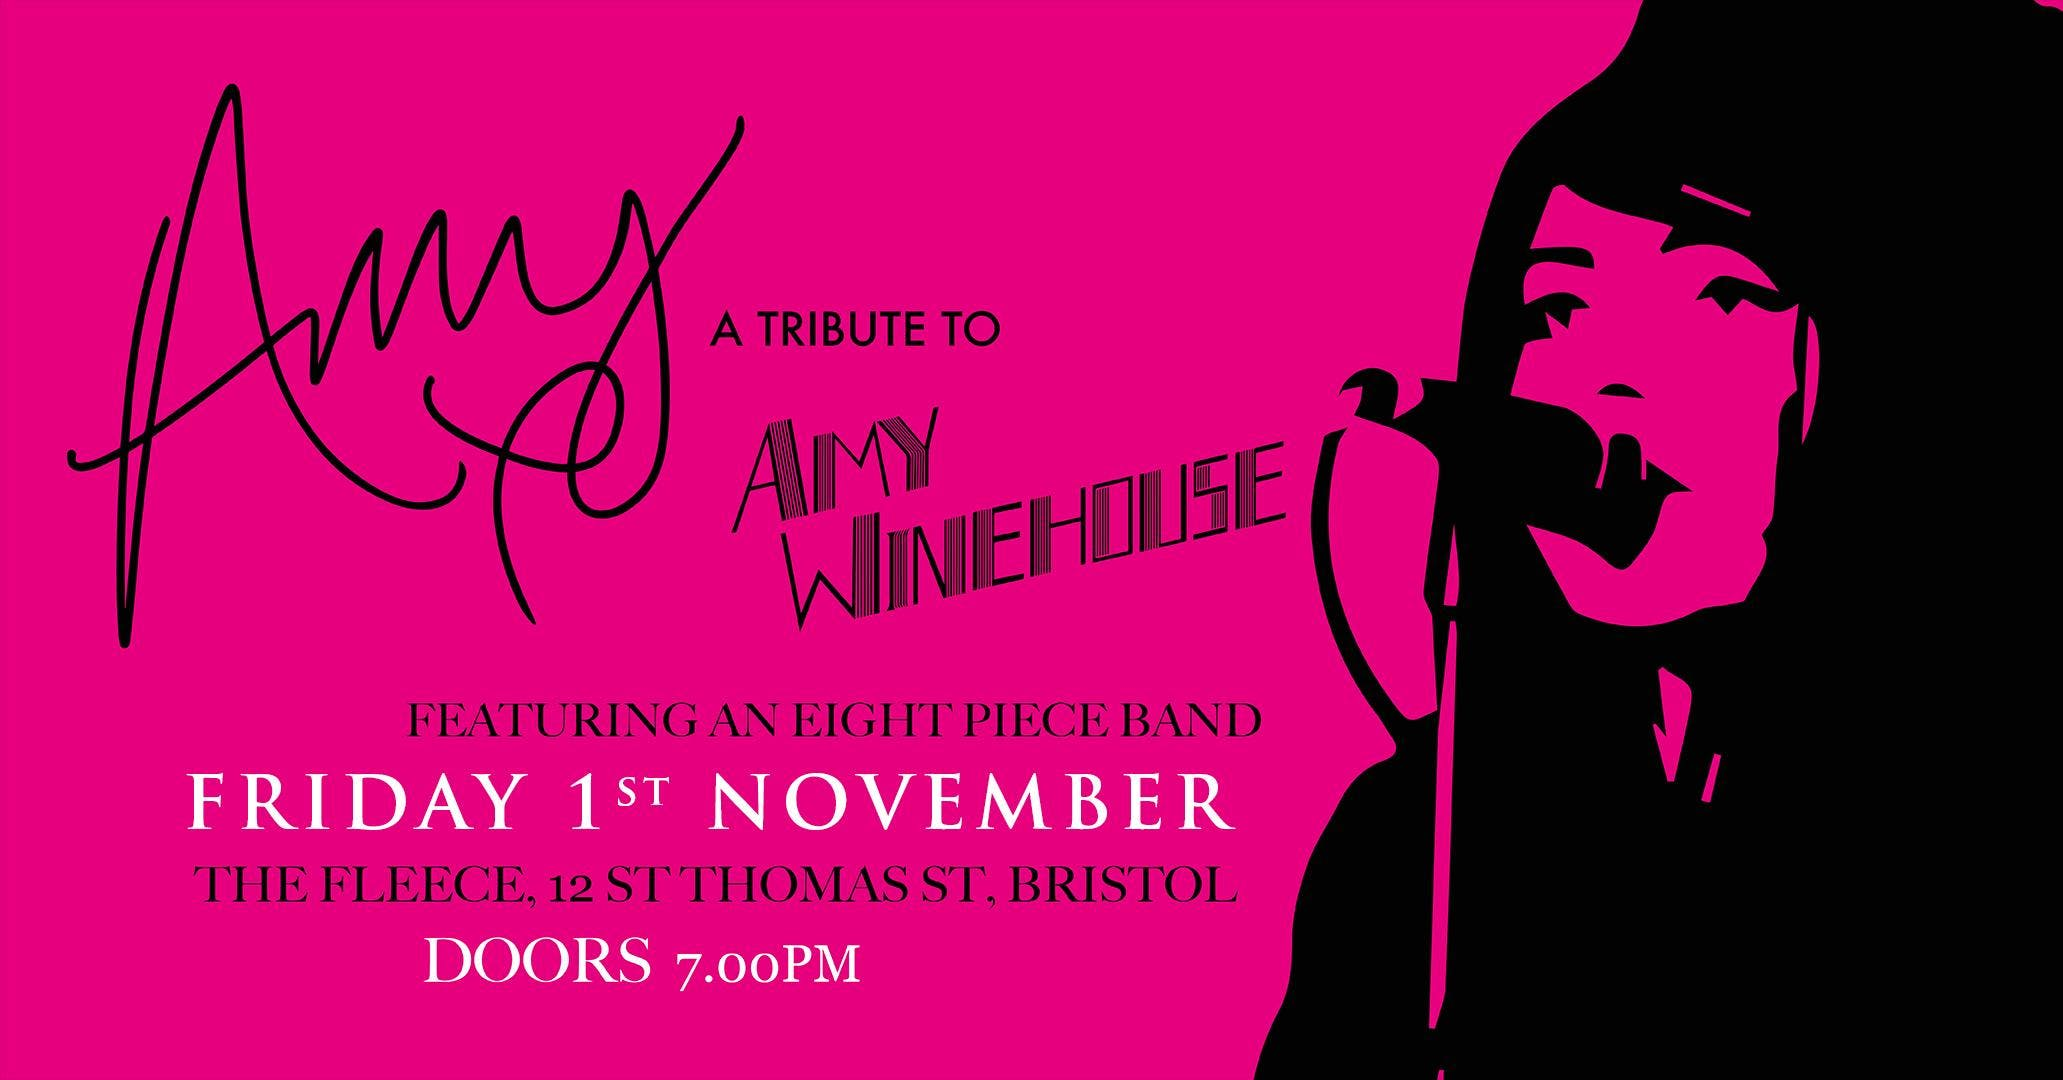 AMY a tribute to Amy Winehouse